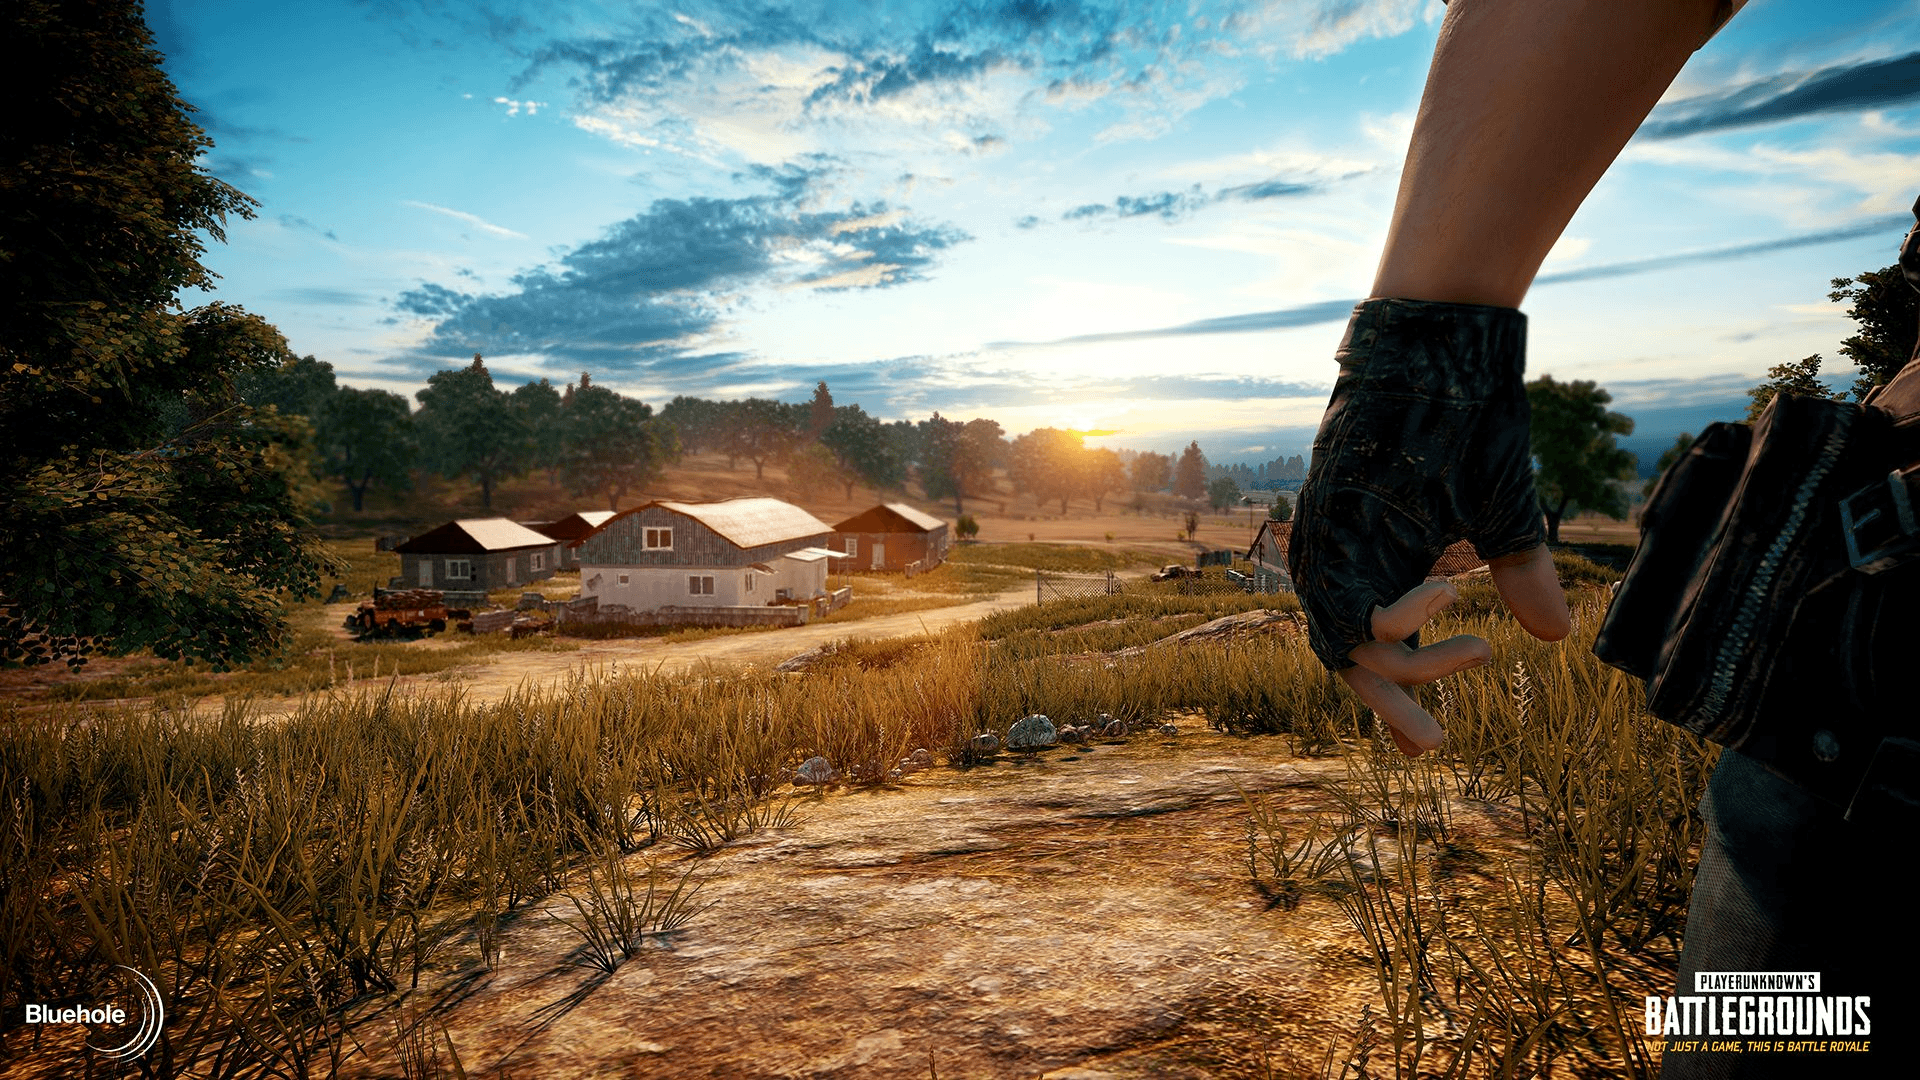 Download Pubg 1 Wallpapers To Your Cell Phone: Top Free PUBG 4K Backgrounds